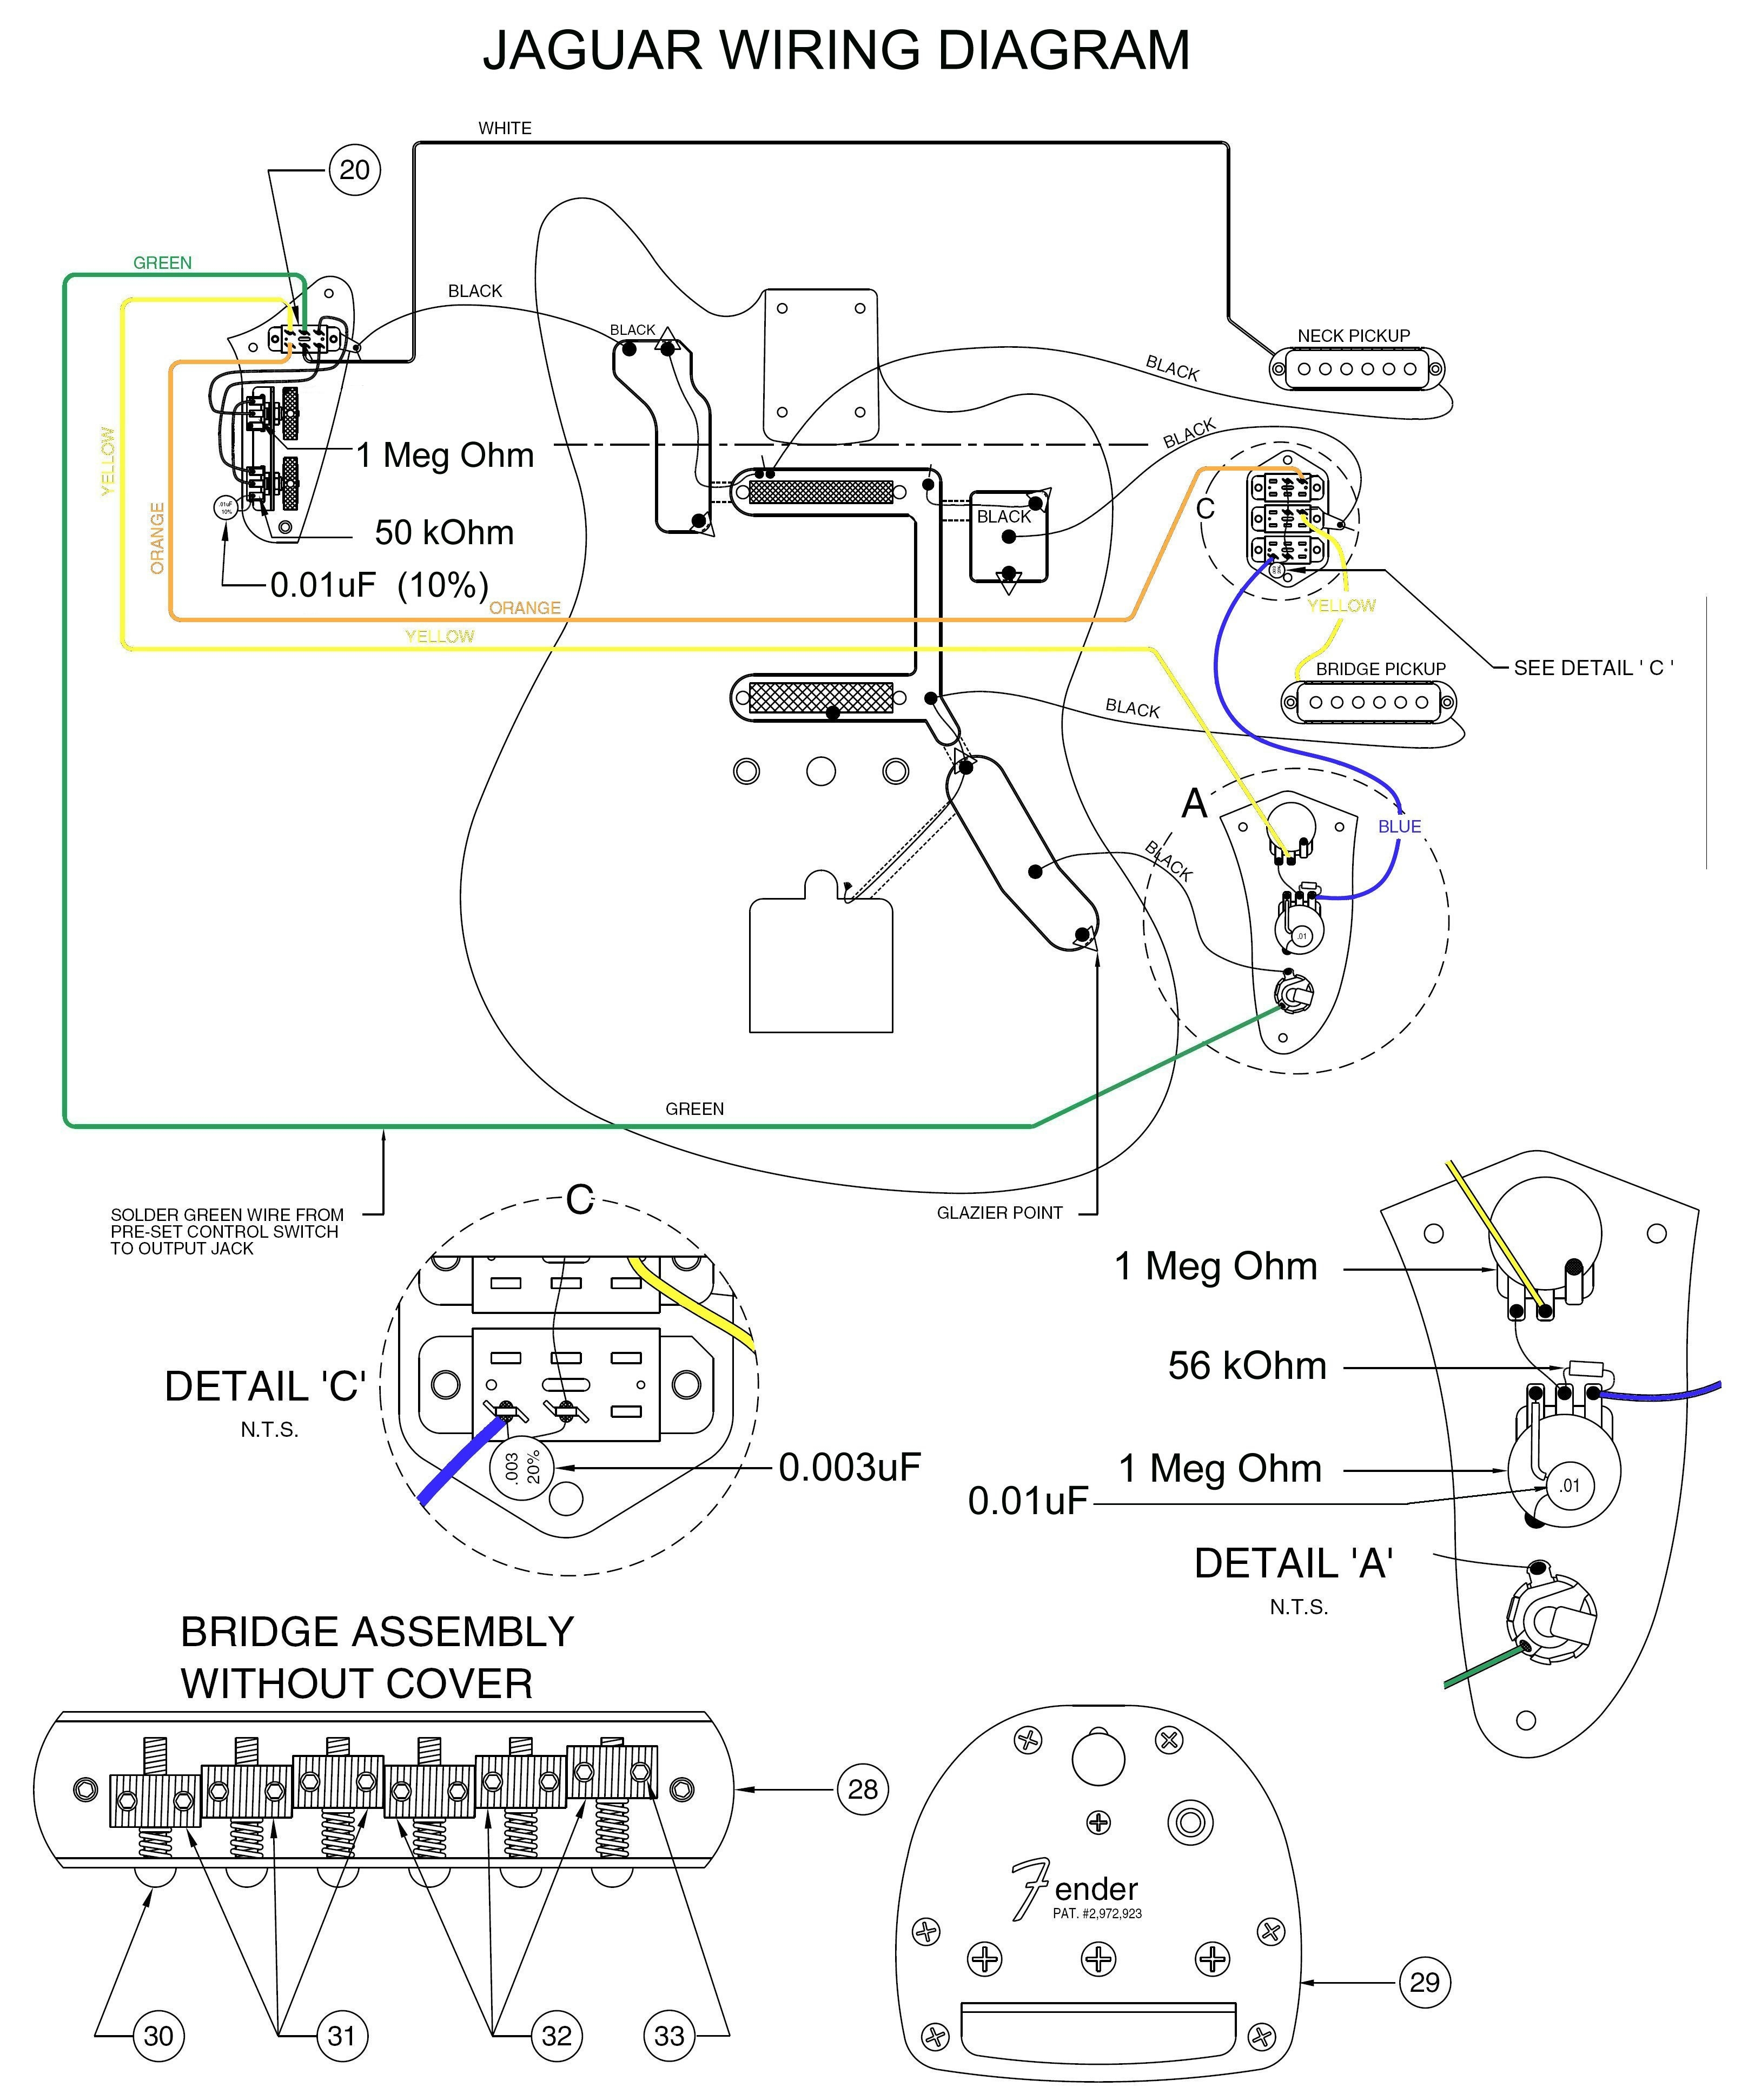 fender jaguar wiring schematic Download-Jaguar Guitar Wiring Diagram Best Wiring Diagram Stratocaster Guitar Inspirationa Fender Jaguar Wiring 7-d